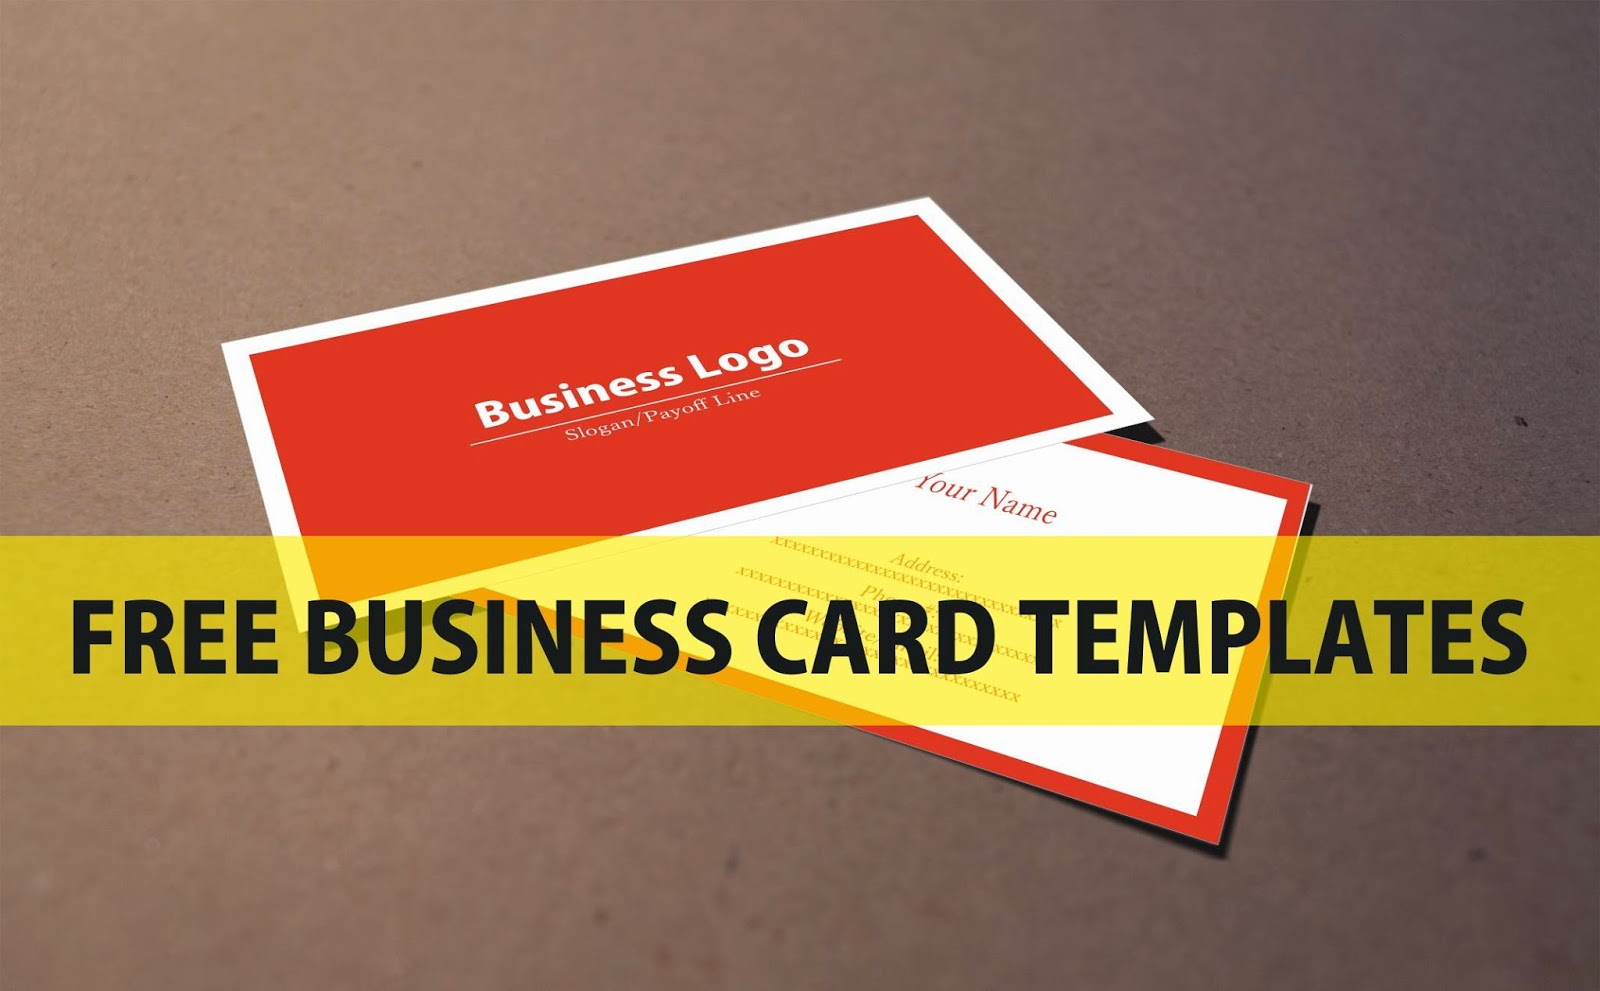 Free+business+card+templates.jpg